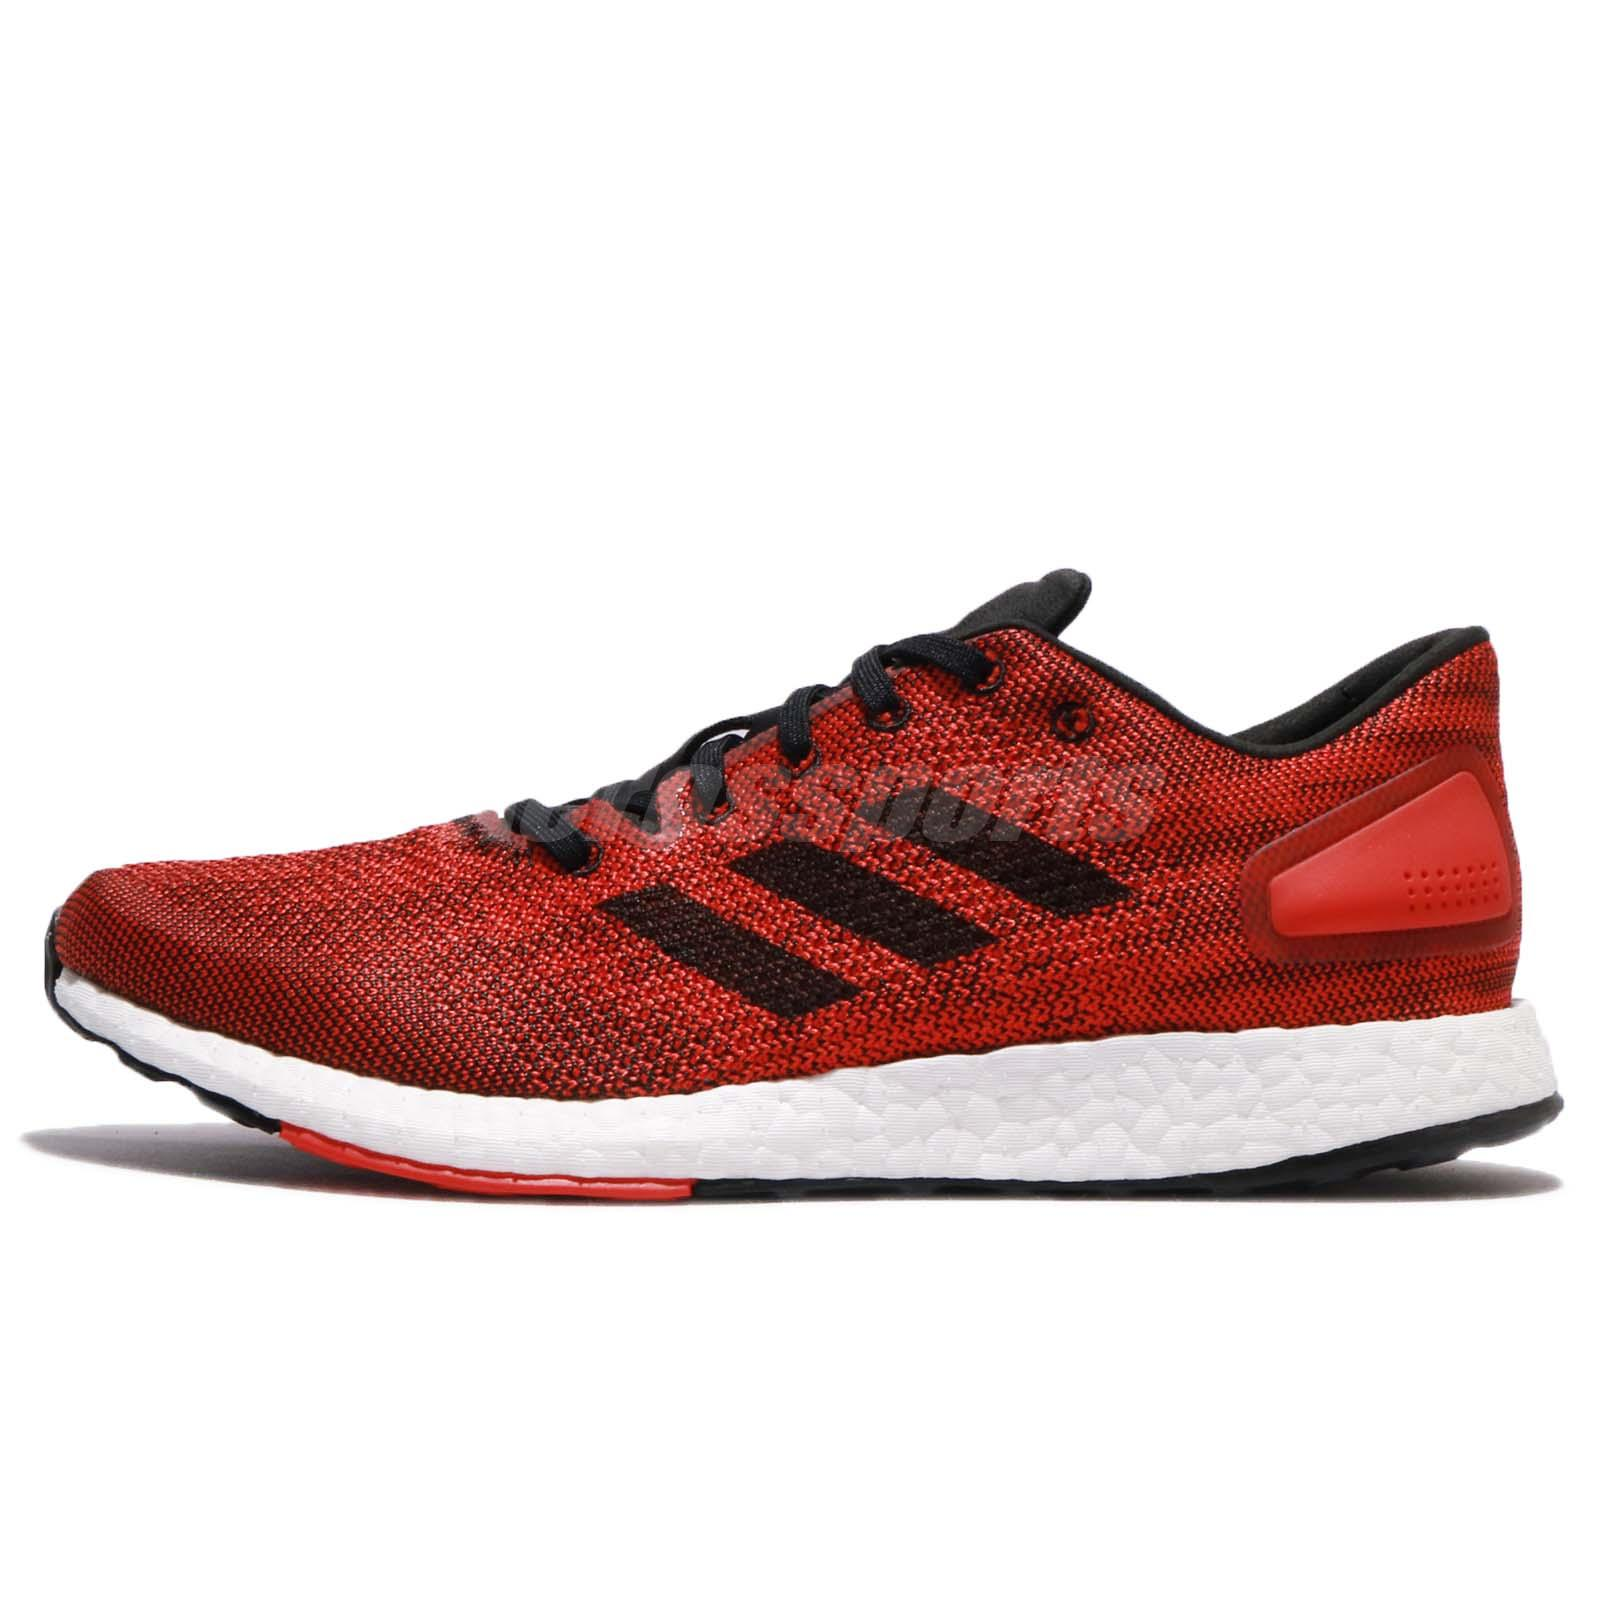 adidas PureBOOST DPR Red Black Men Running Shoes Sneakers Trainers BB6294